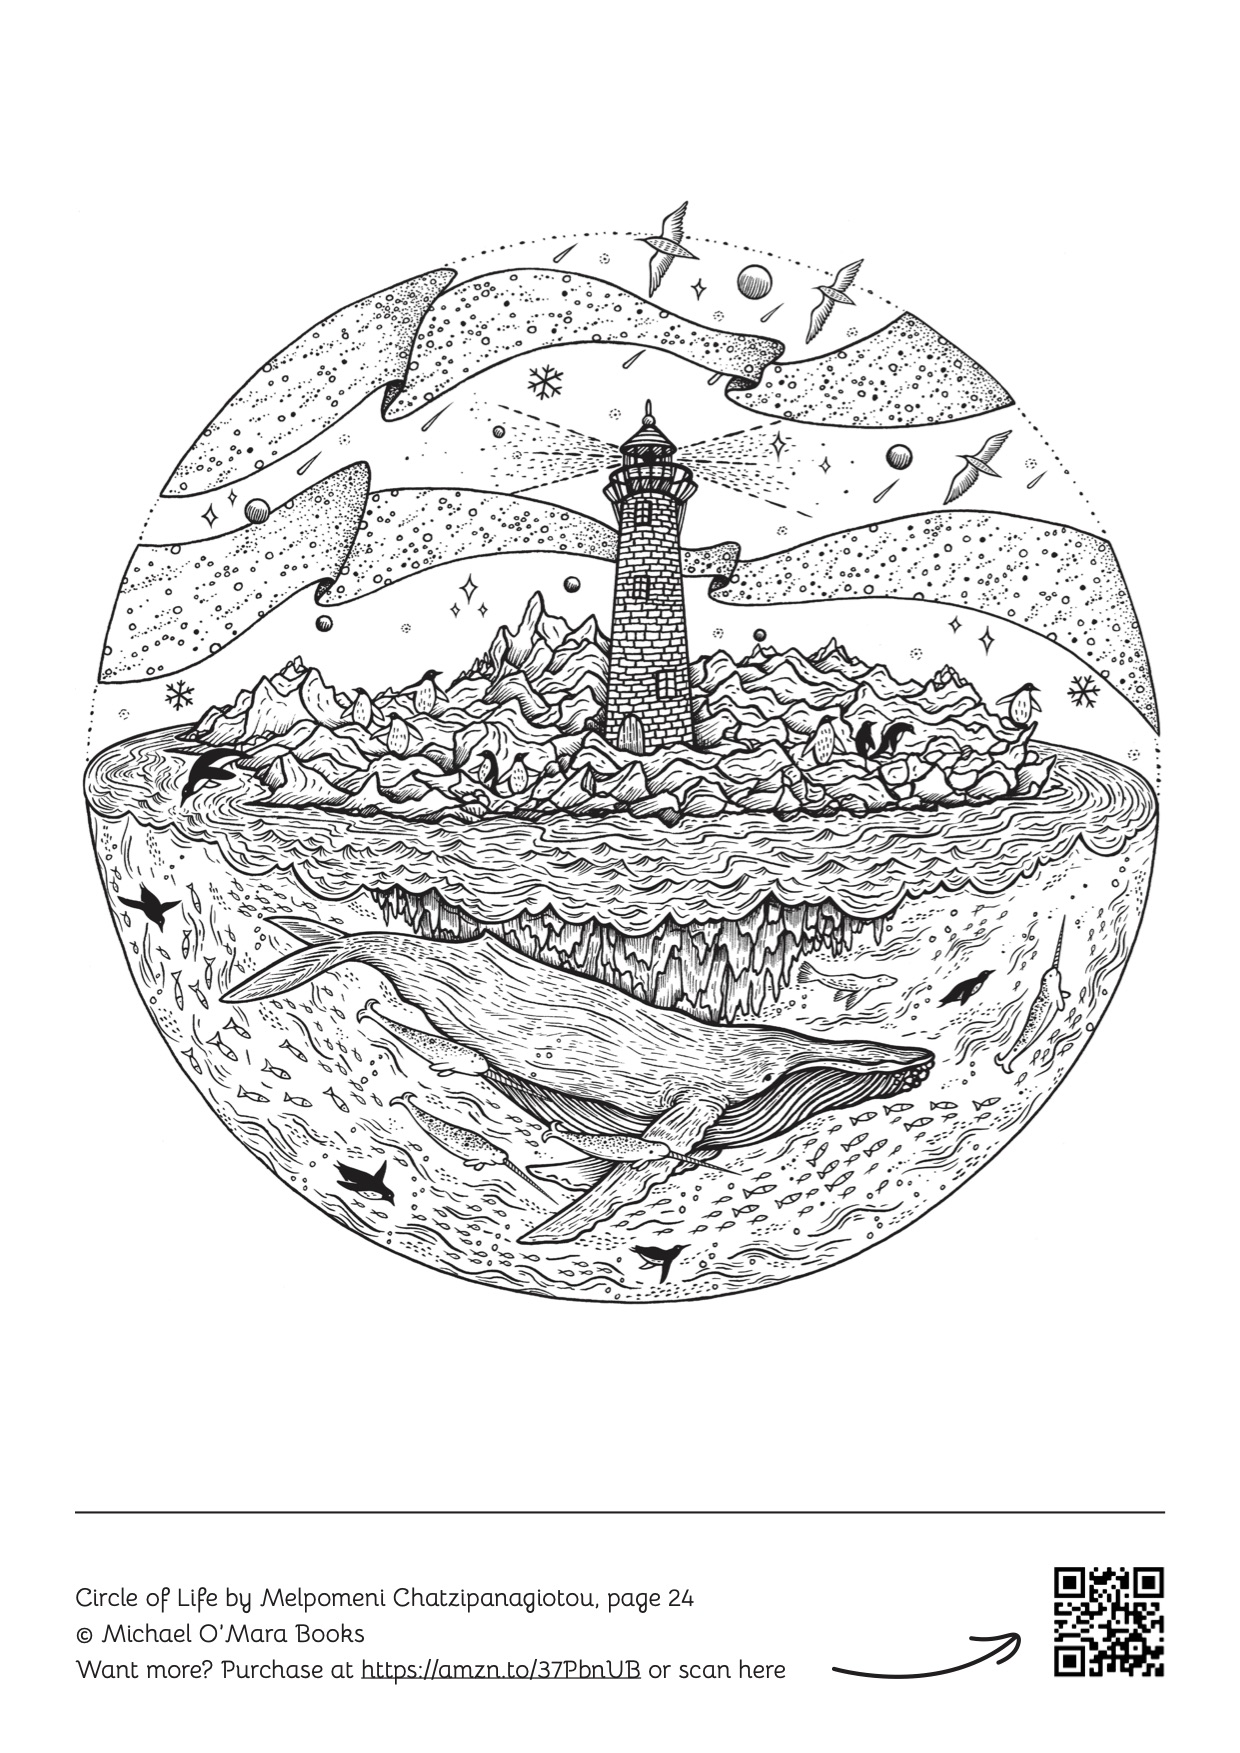 Free Downloadable Colouring Pages For Adults Michael O Mara Books